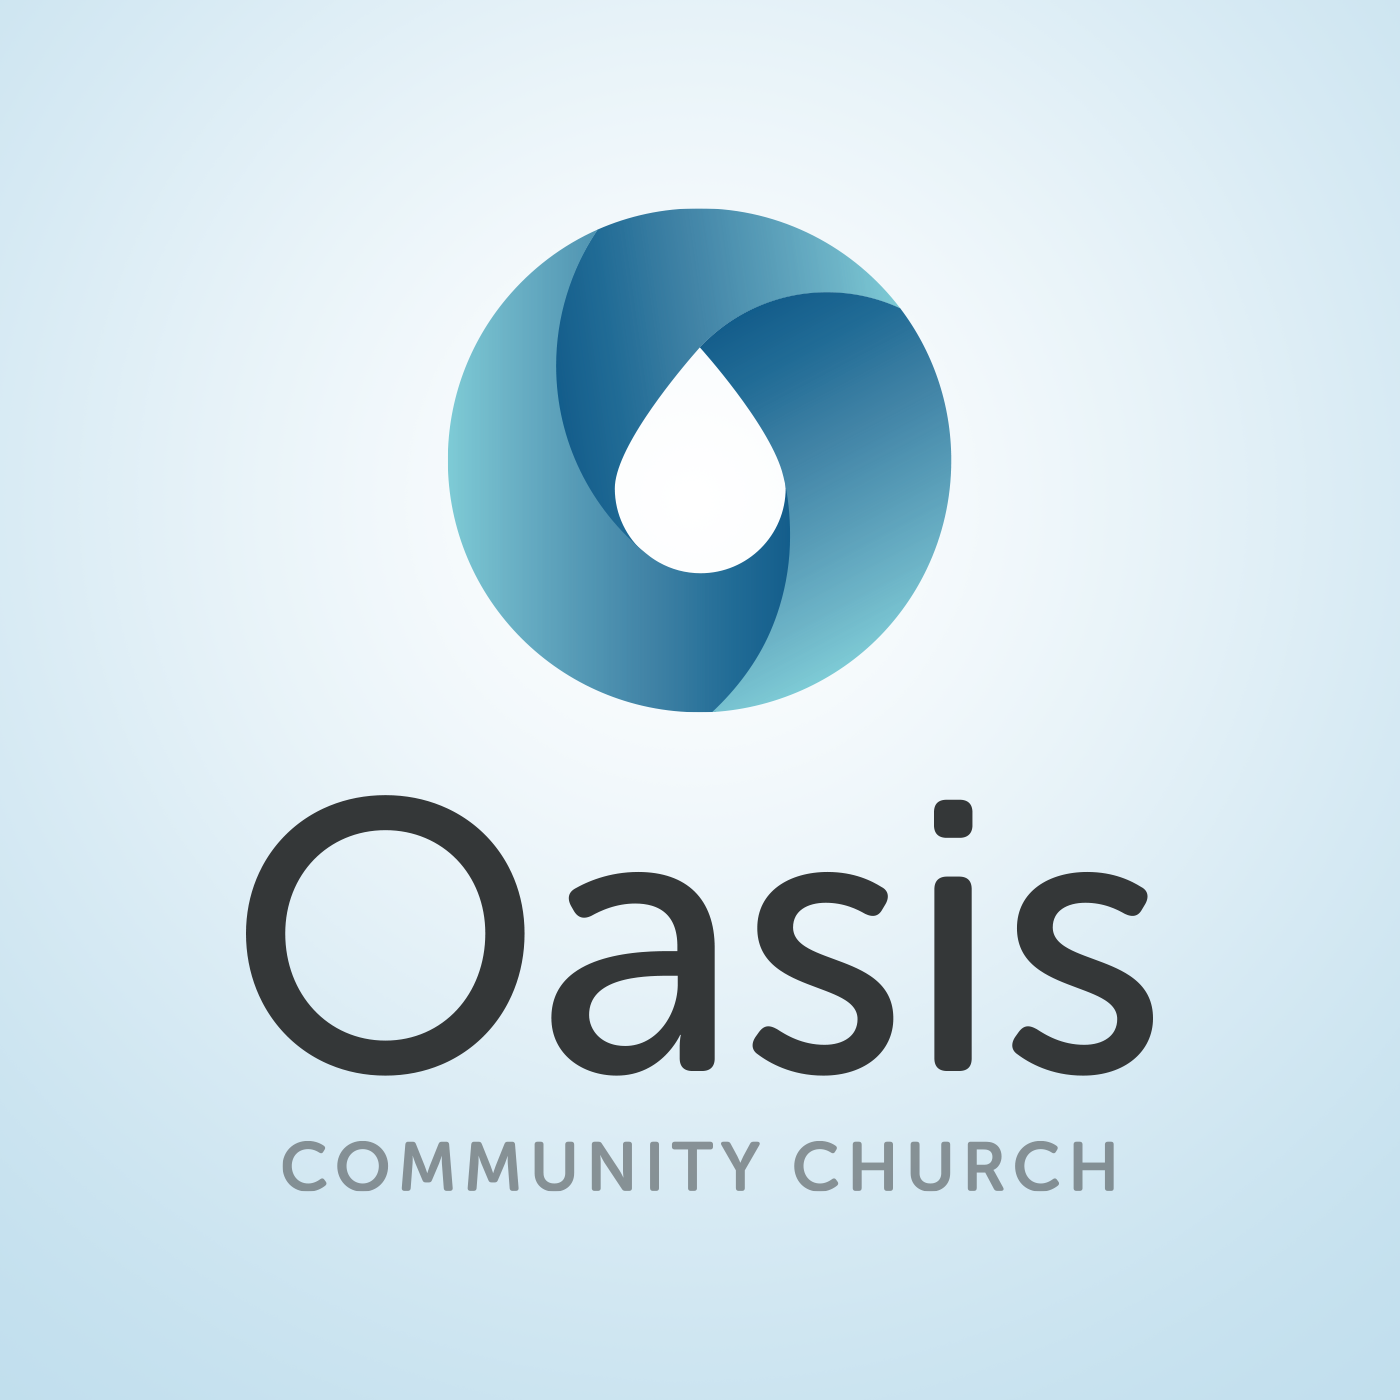 Episodes – Oasis Community Church